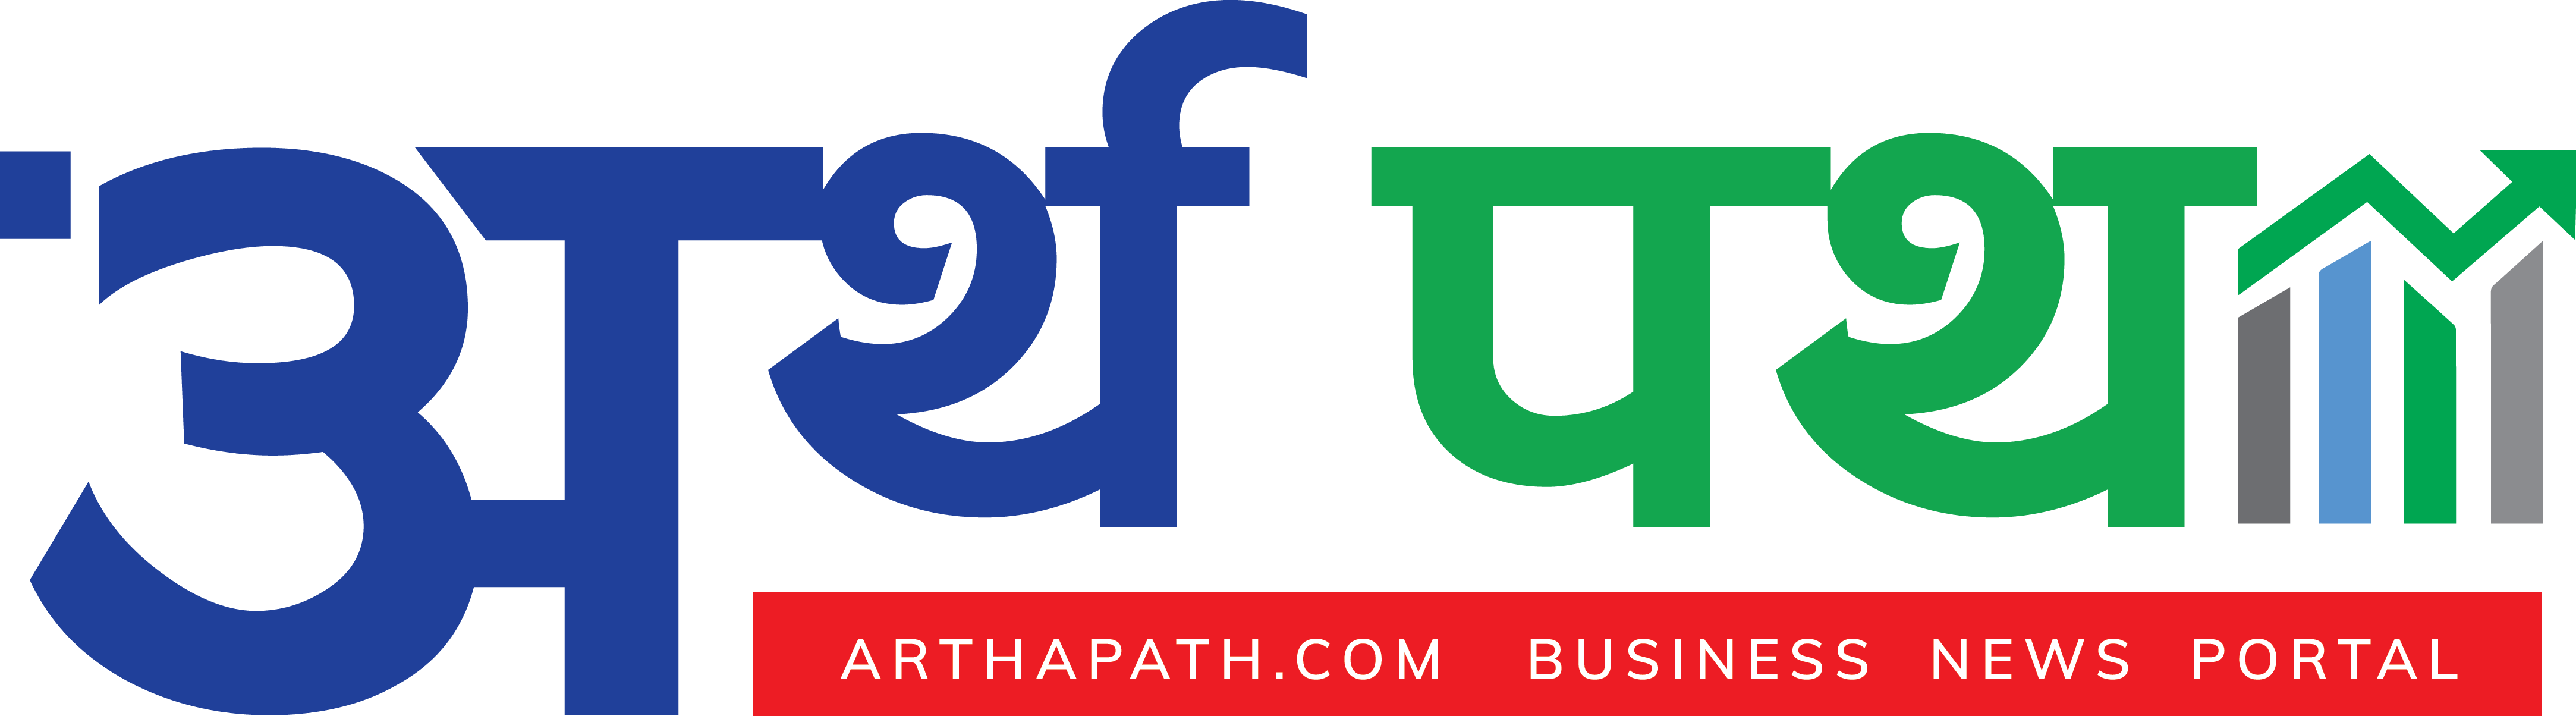 logo Arthapath business news portal